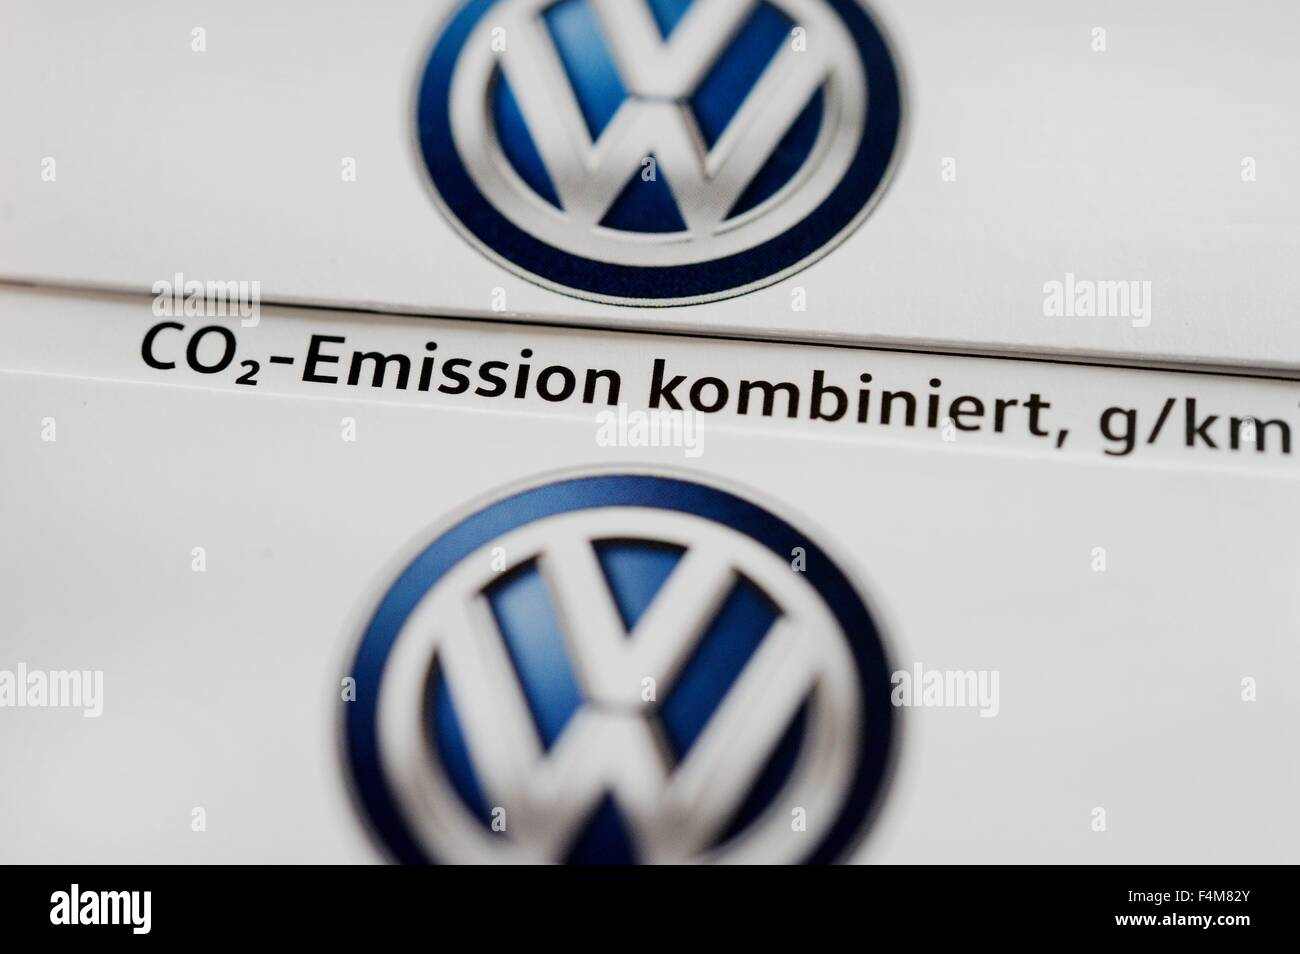 Vw logos germany city of osterode 20 october 2015 photo frank may